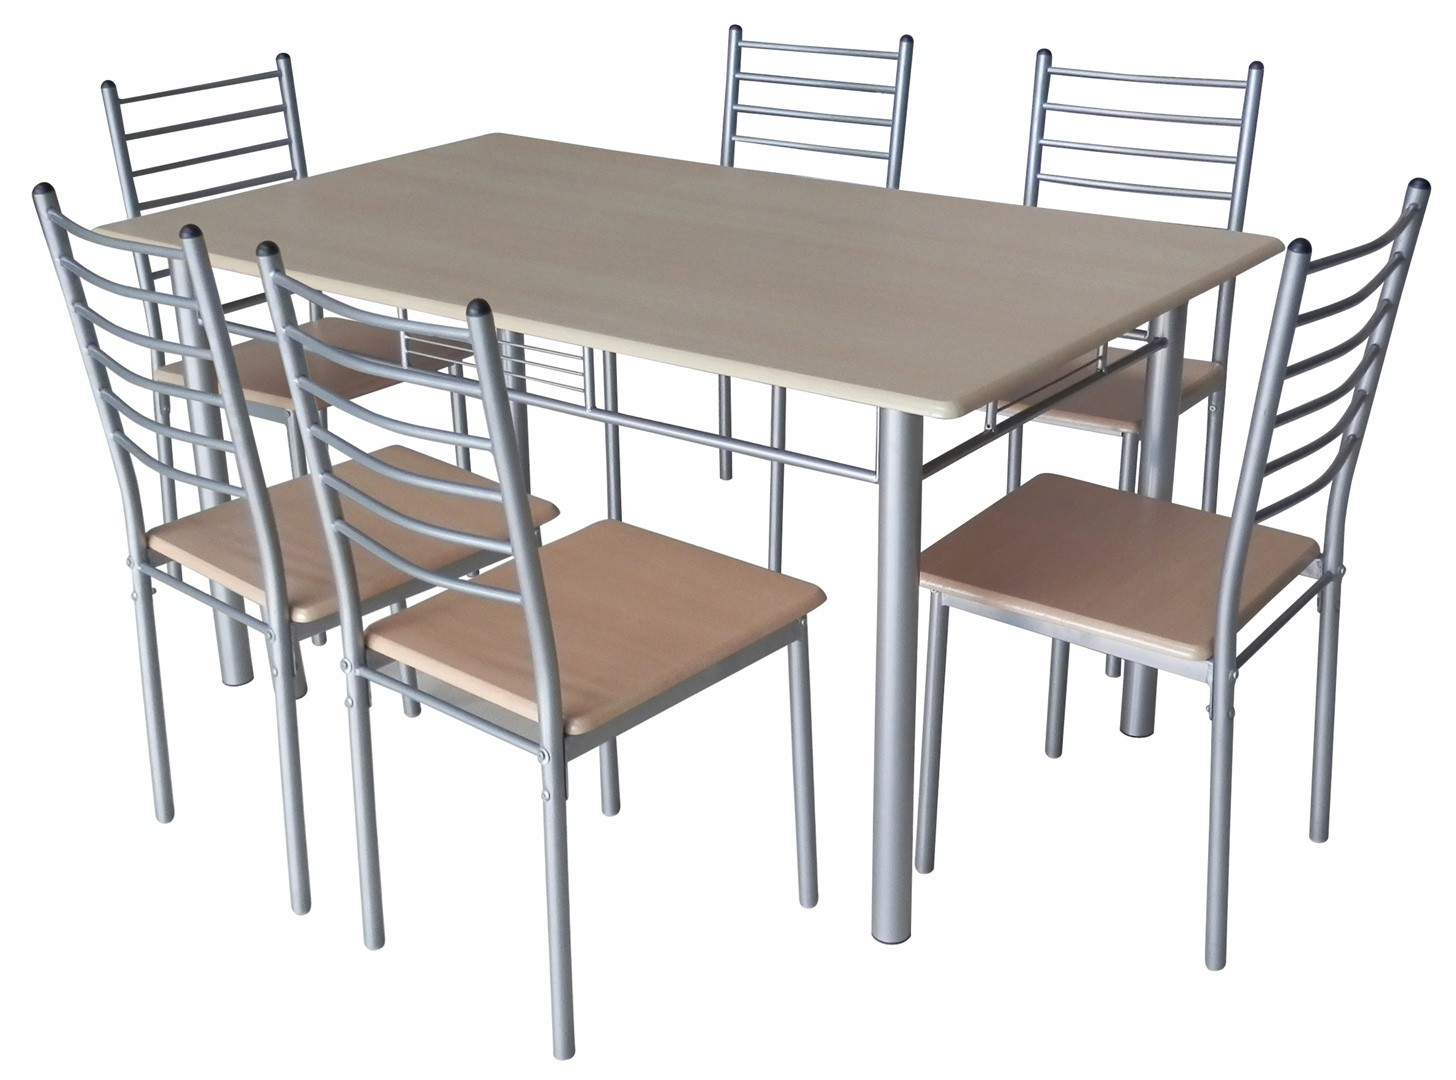 Ensemble table et chaises de cuisine but chaise id es - Ensemble de table de cuisine ...